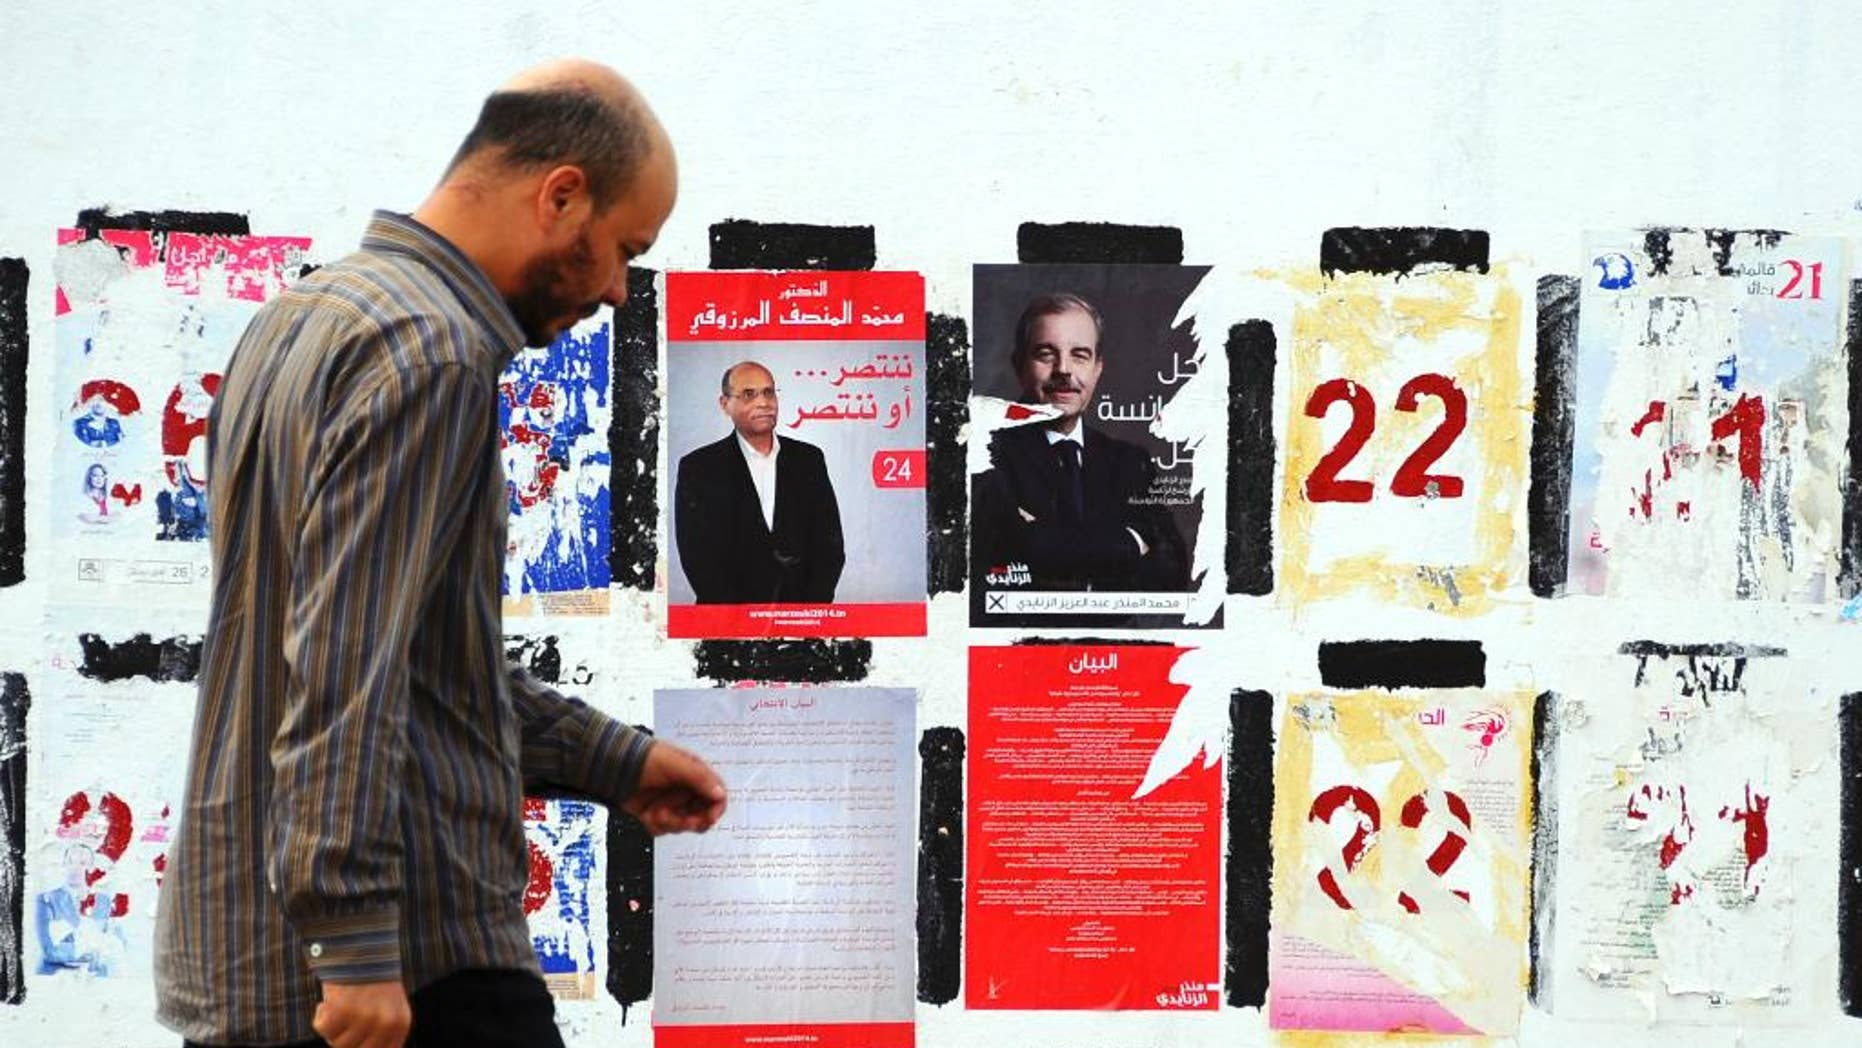 In this photo taken Wednesday, Nov. 5, 2014, a man walks past electoral posters for the upcoming presidential elections in Tunis. Campaign posters and banners for next week's presidential elections have covered the walls of Tunisia's cities and towns, papering over the flaking posters from the parliamentary elections just three weeks ago. (AP Photo/Hassene Dridi)